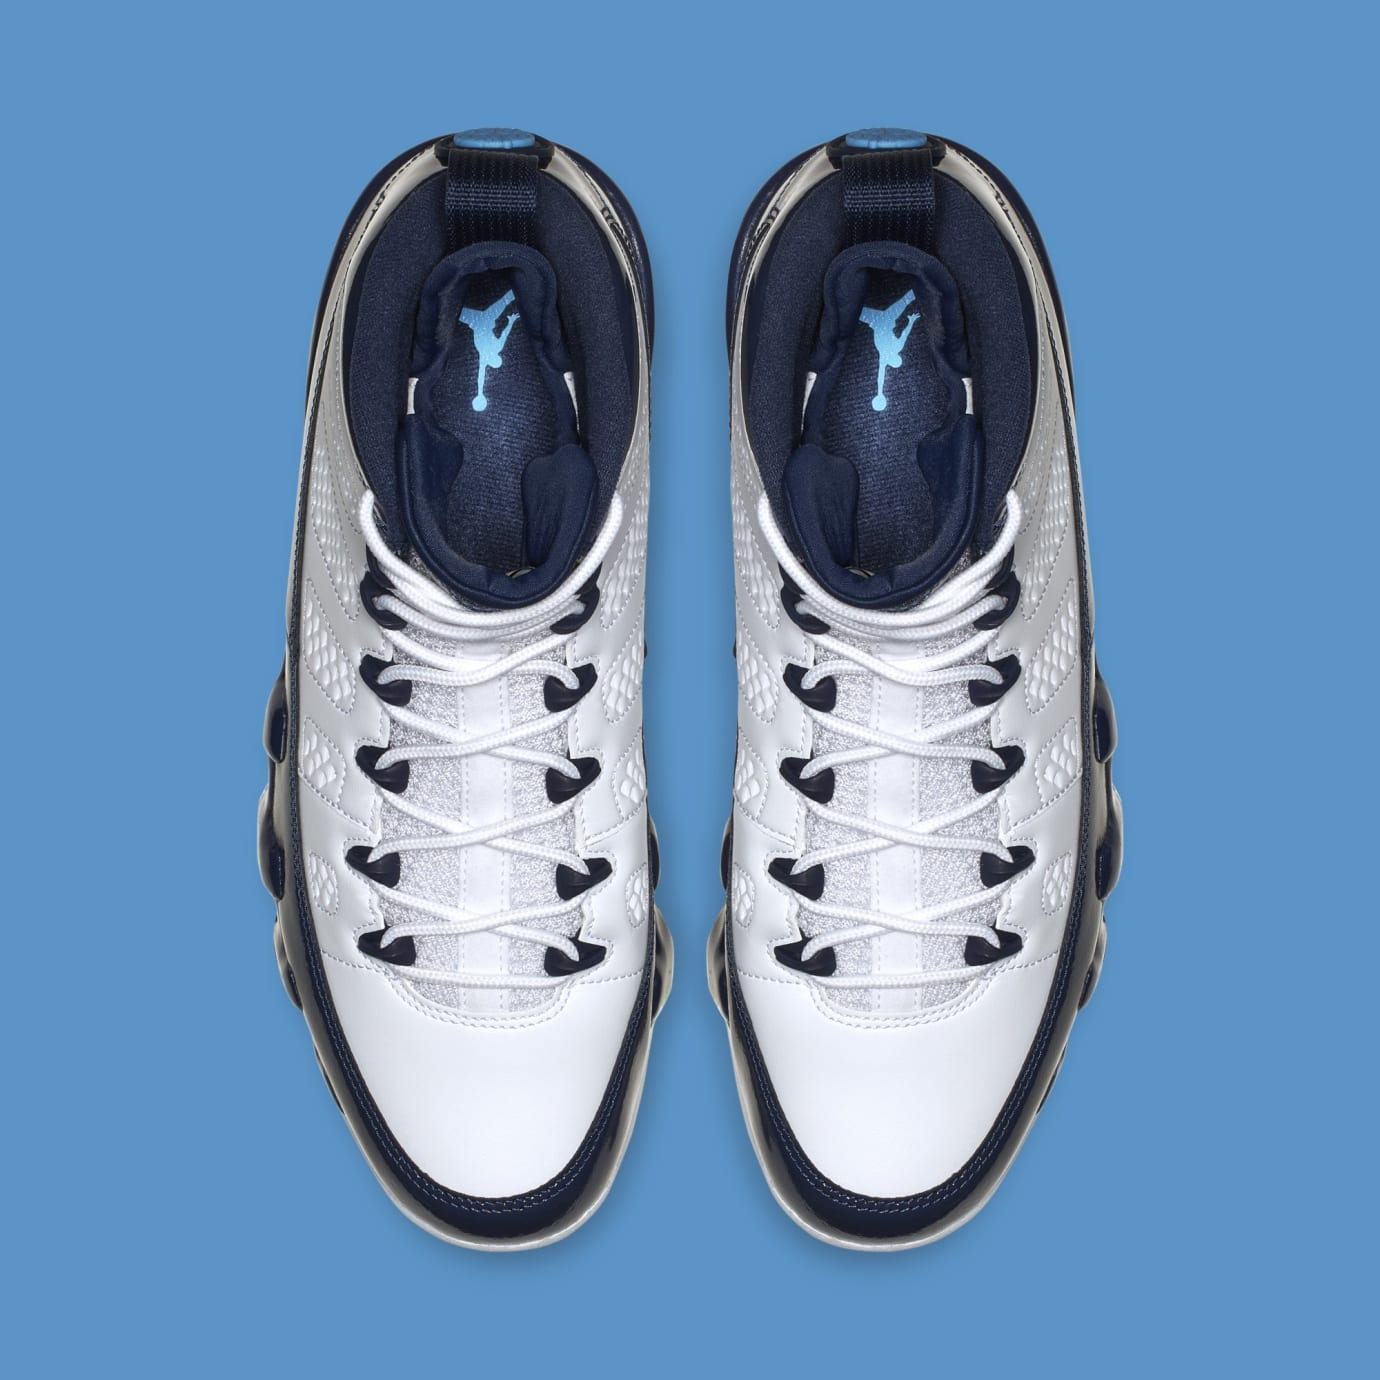 0883b412eb4 Image via Nike Air Jordan 9 'White/Midnight Navy-University Blue'  302370-145 (